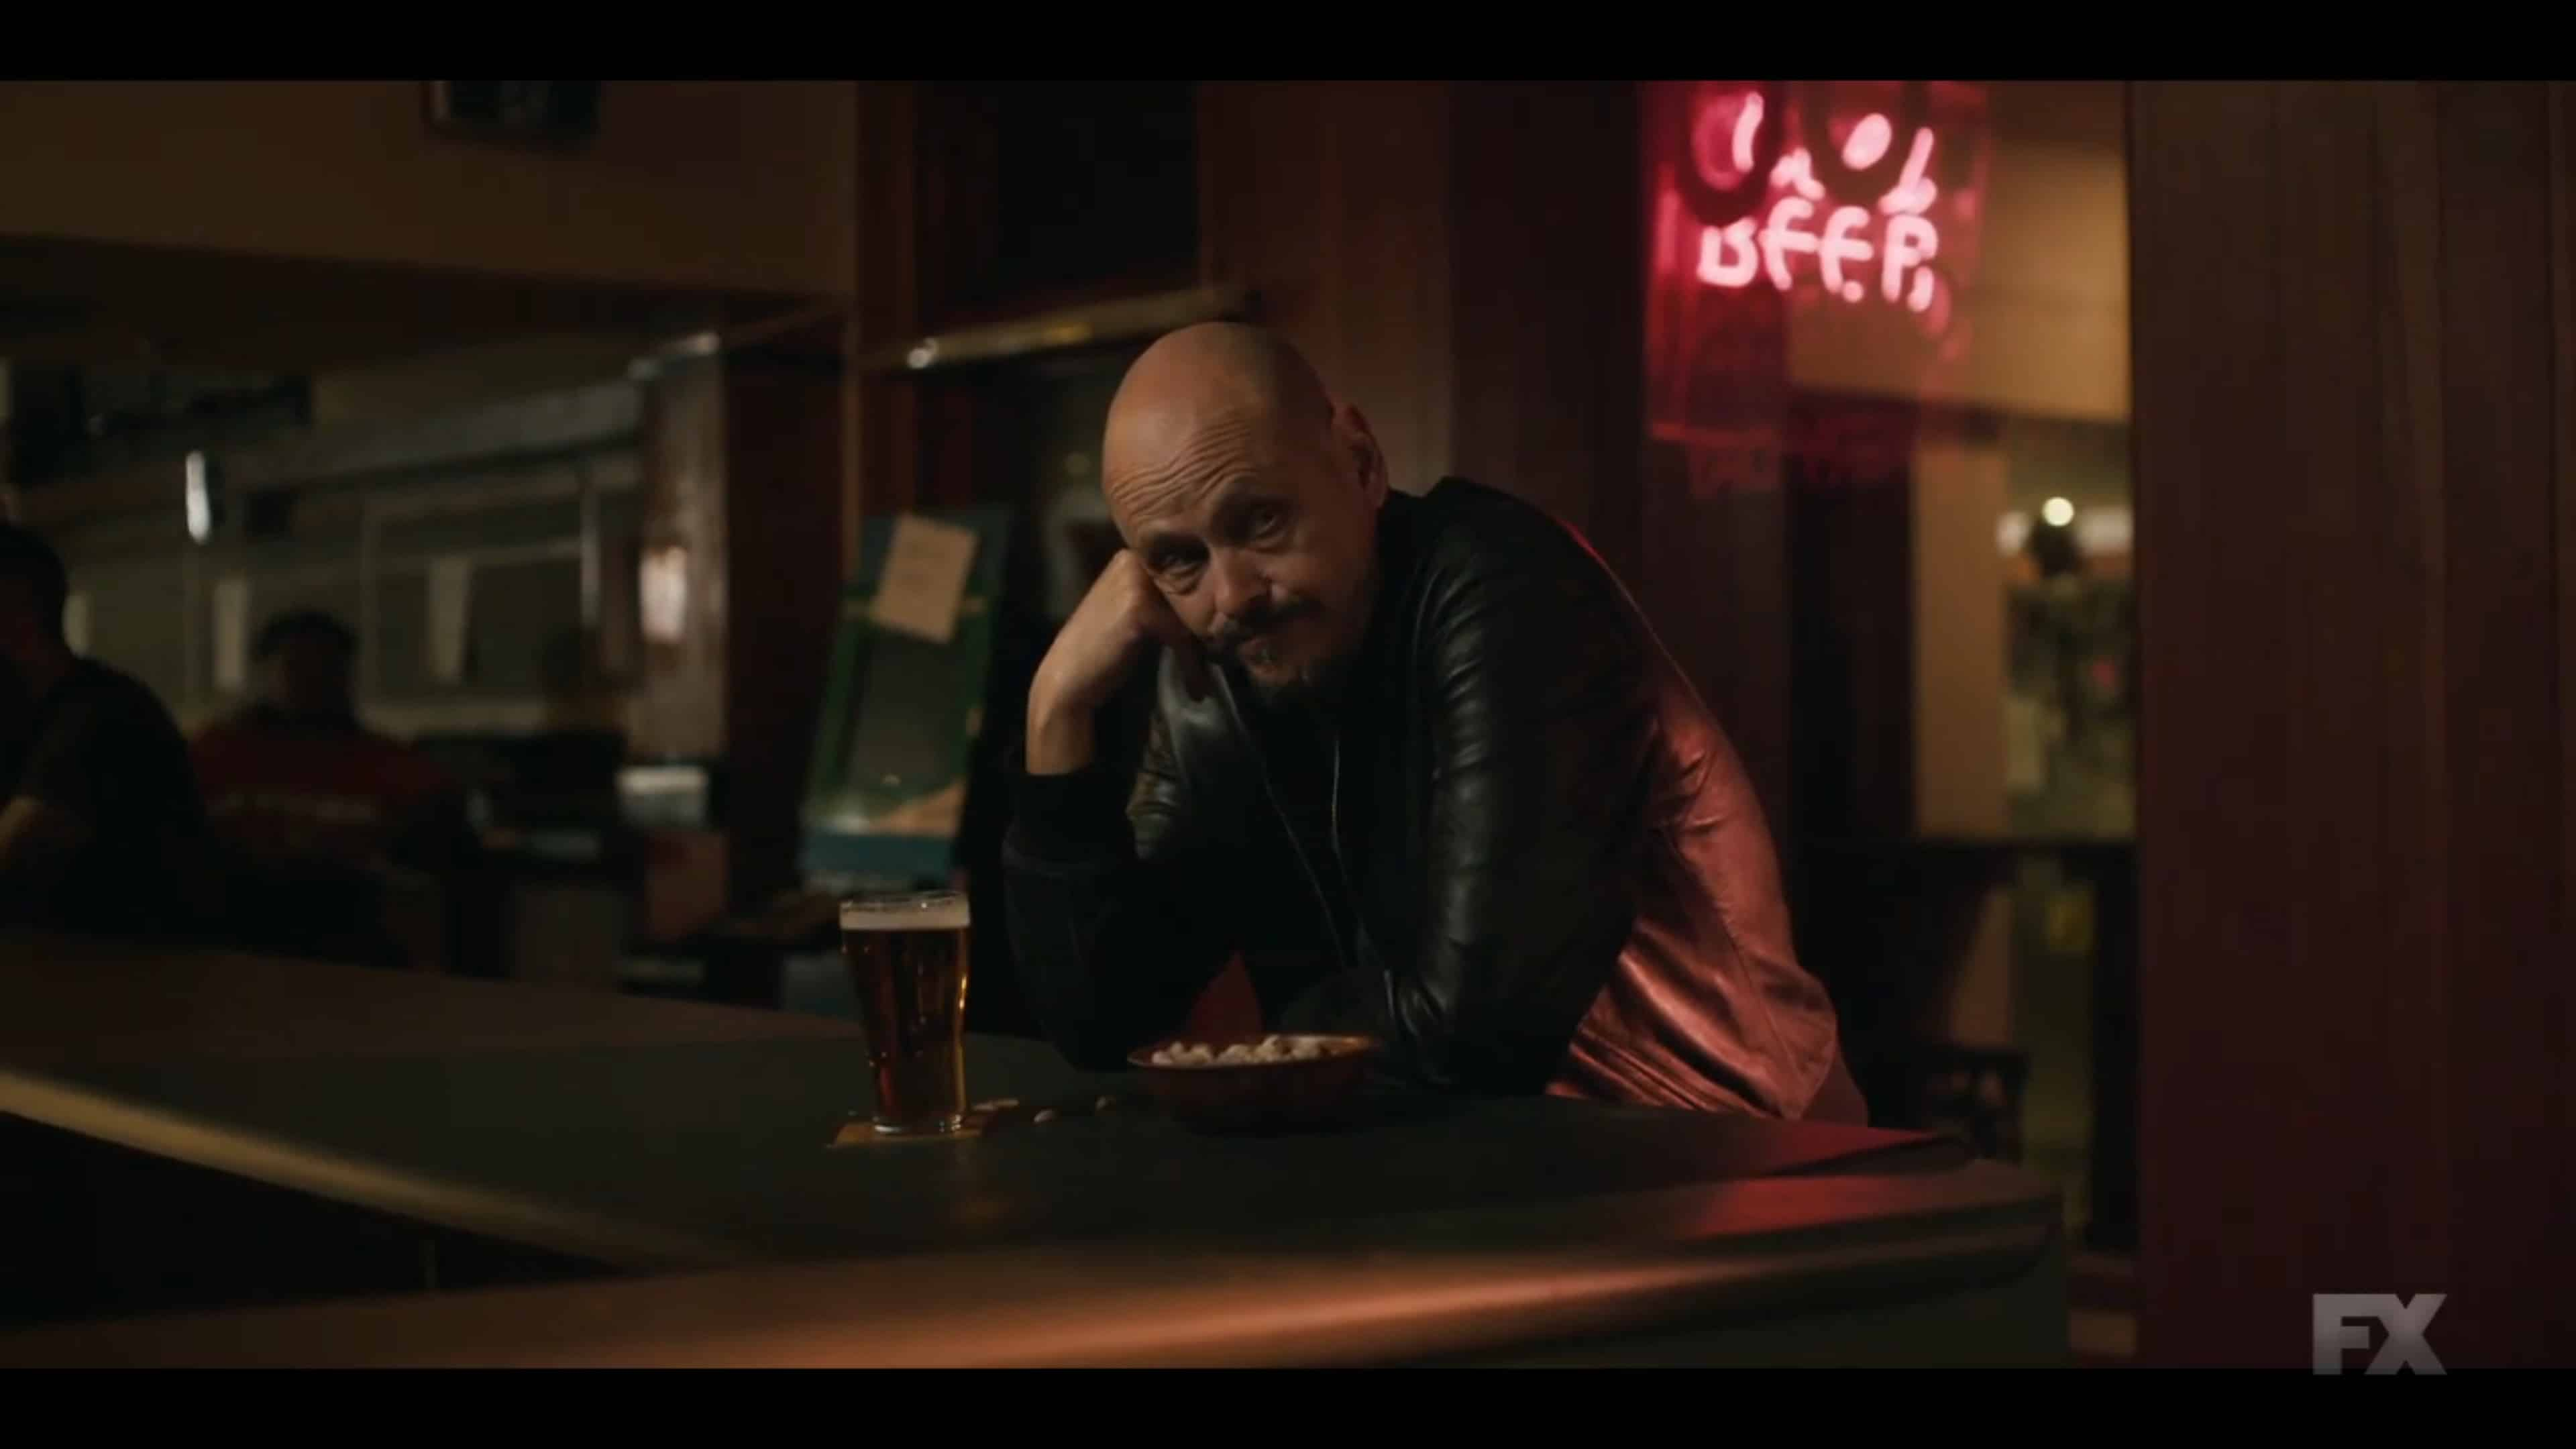 Ray sitting at a bar, watching people have fun